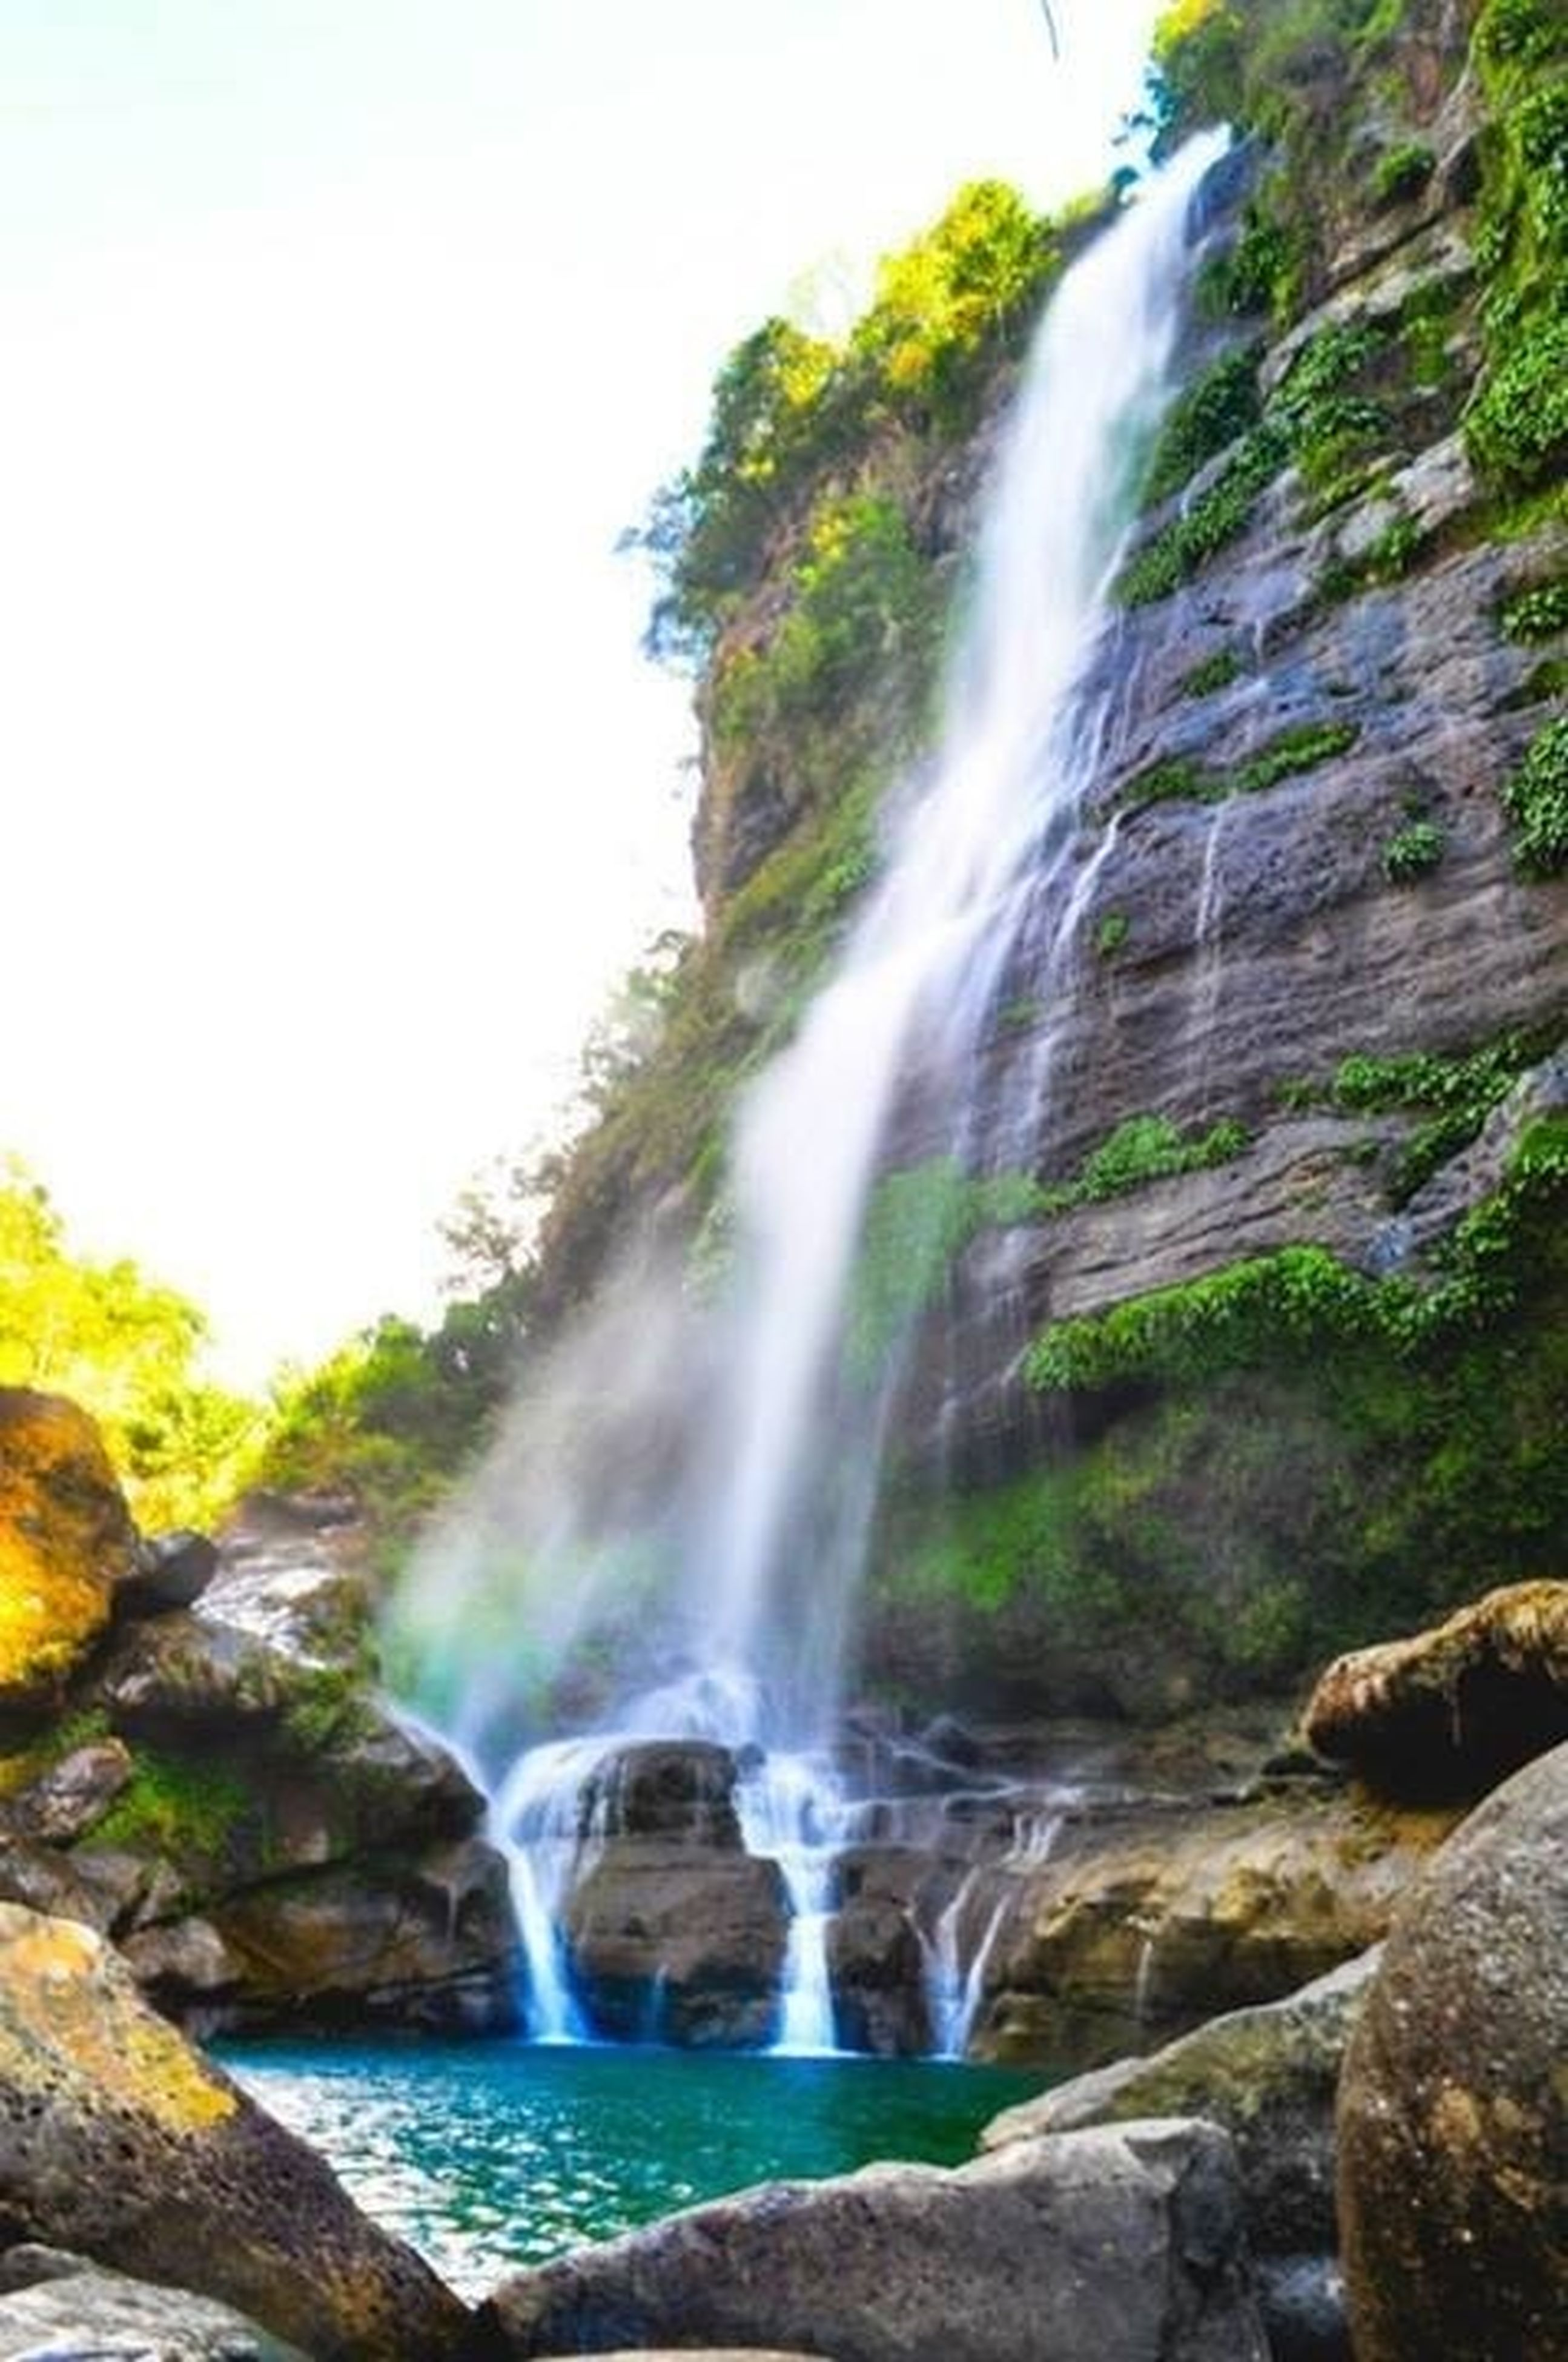 waterfall, motion, flowing water, water, long exposure, rock - object, flowing, beauty in nature, scenics, nature, blurred motion, rock formation, splashing, power in nature, rock, forest, idyllic, environment, mountain, tree